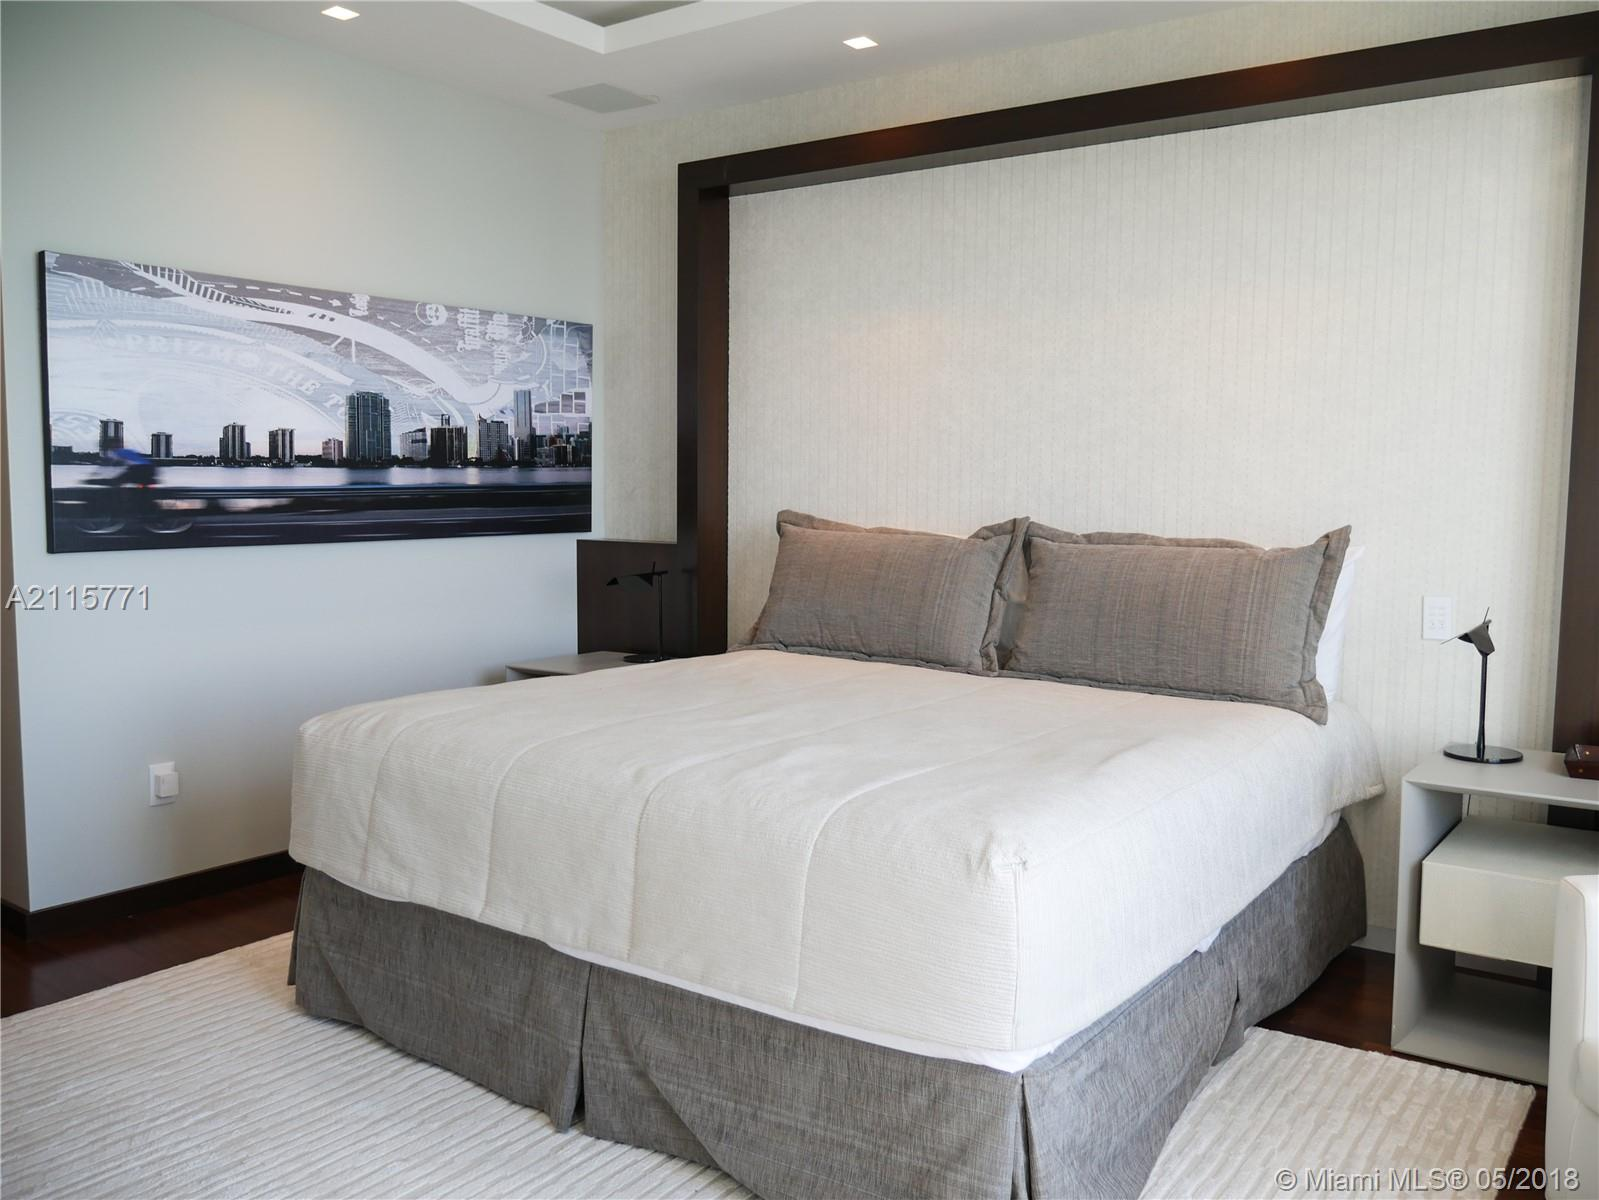 1425 Brickell ave-PH1 miami-fl-33131-a2115771-Pic33